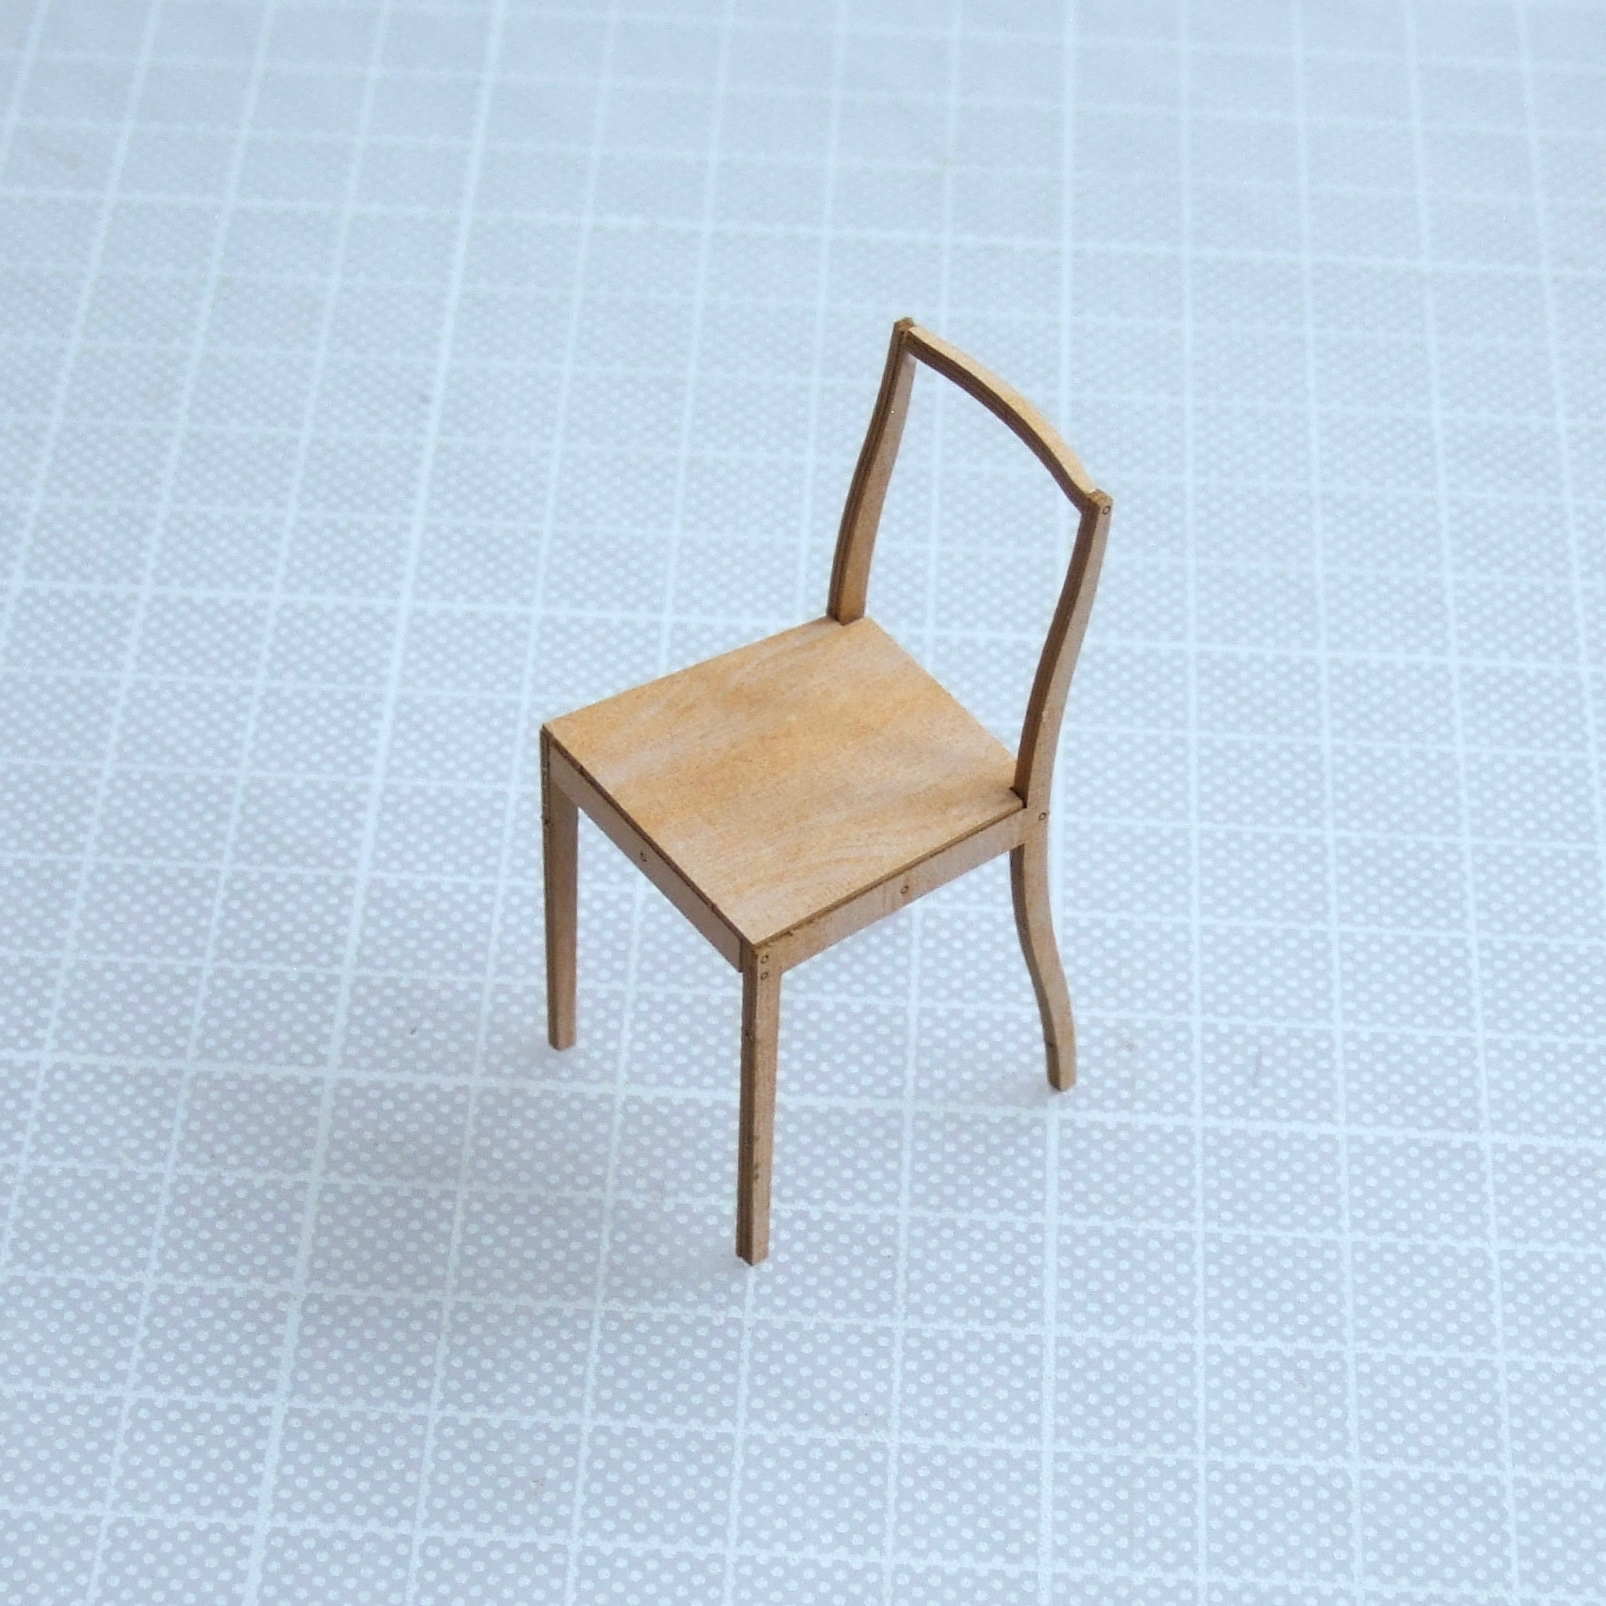 ply chair complete.jpg